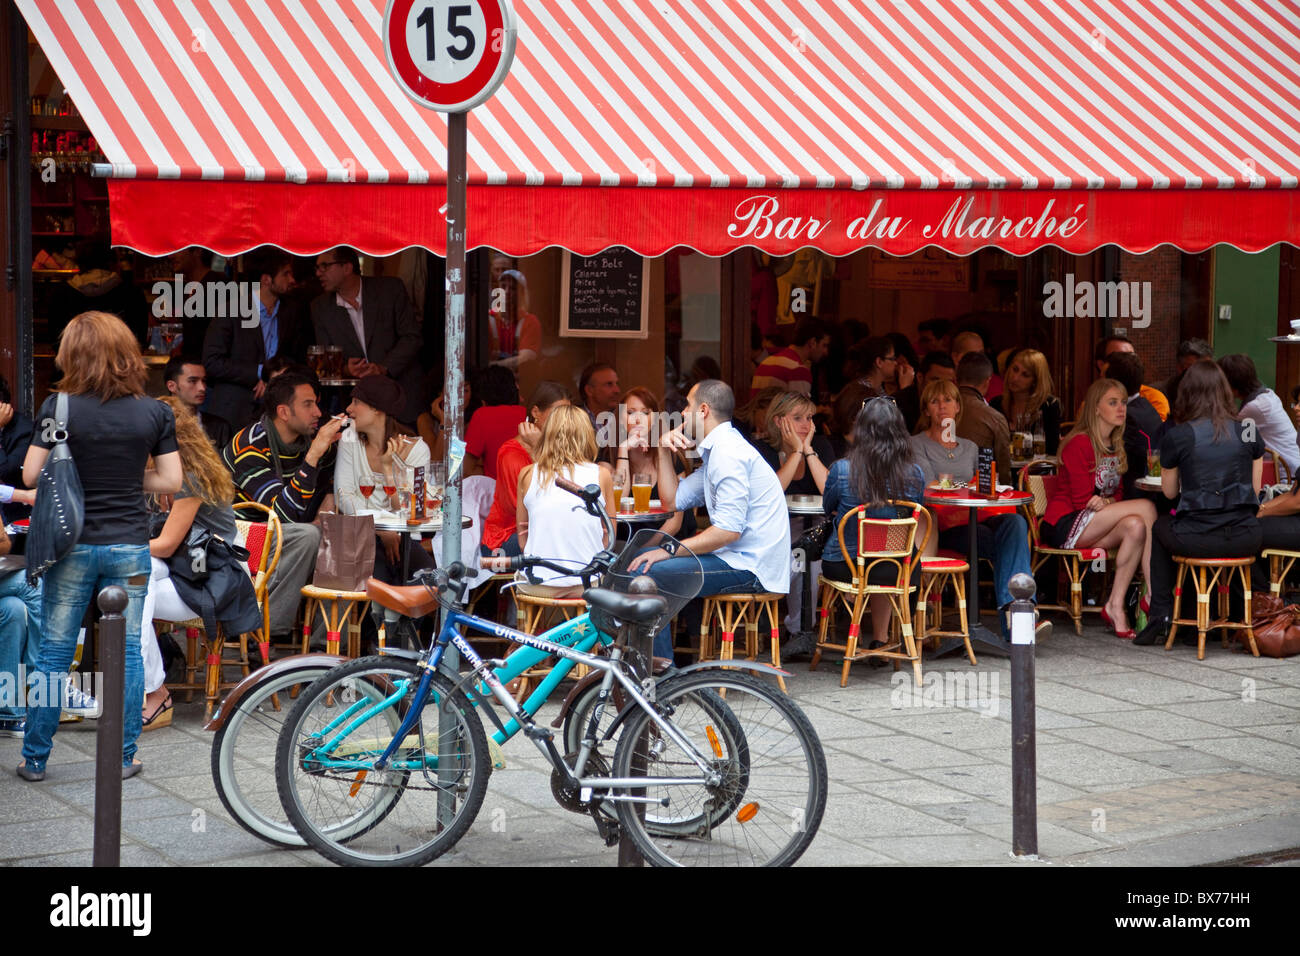 People relaxing at a cafe, Left Bank, Paris, France, Europe - Stock Image